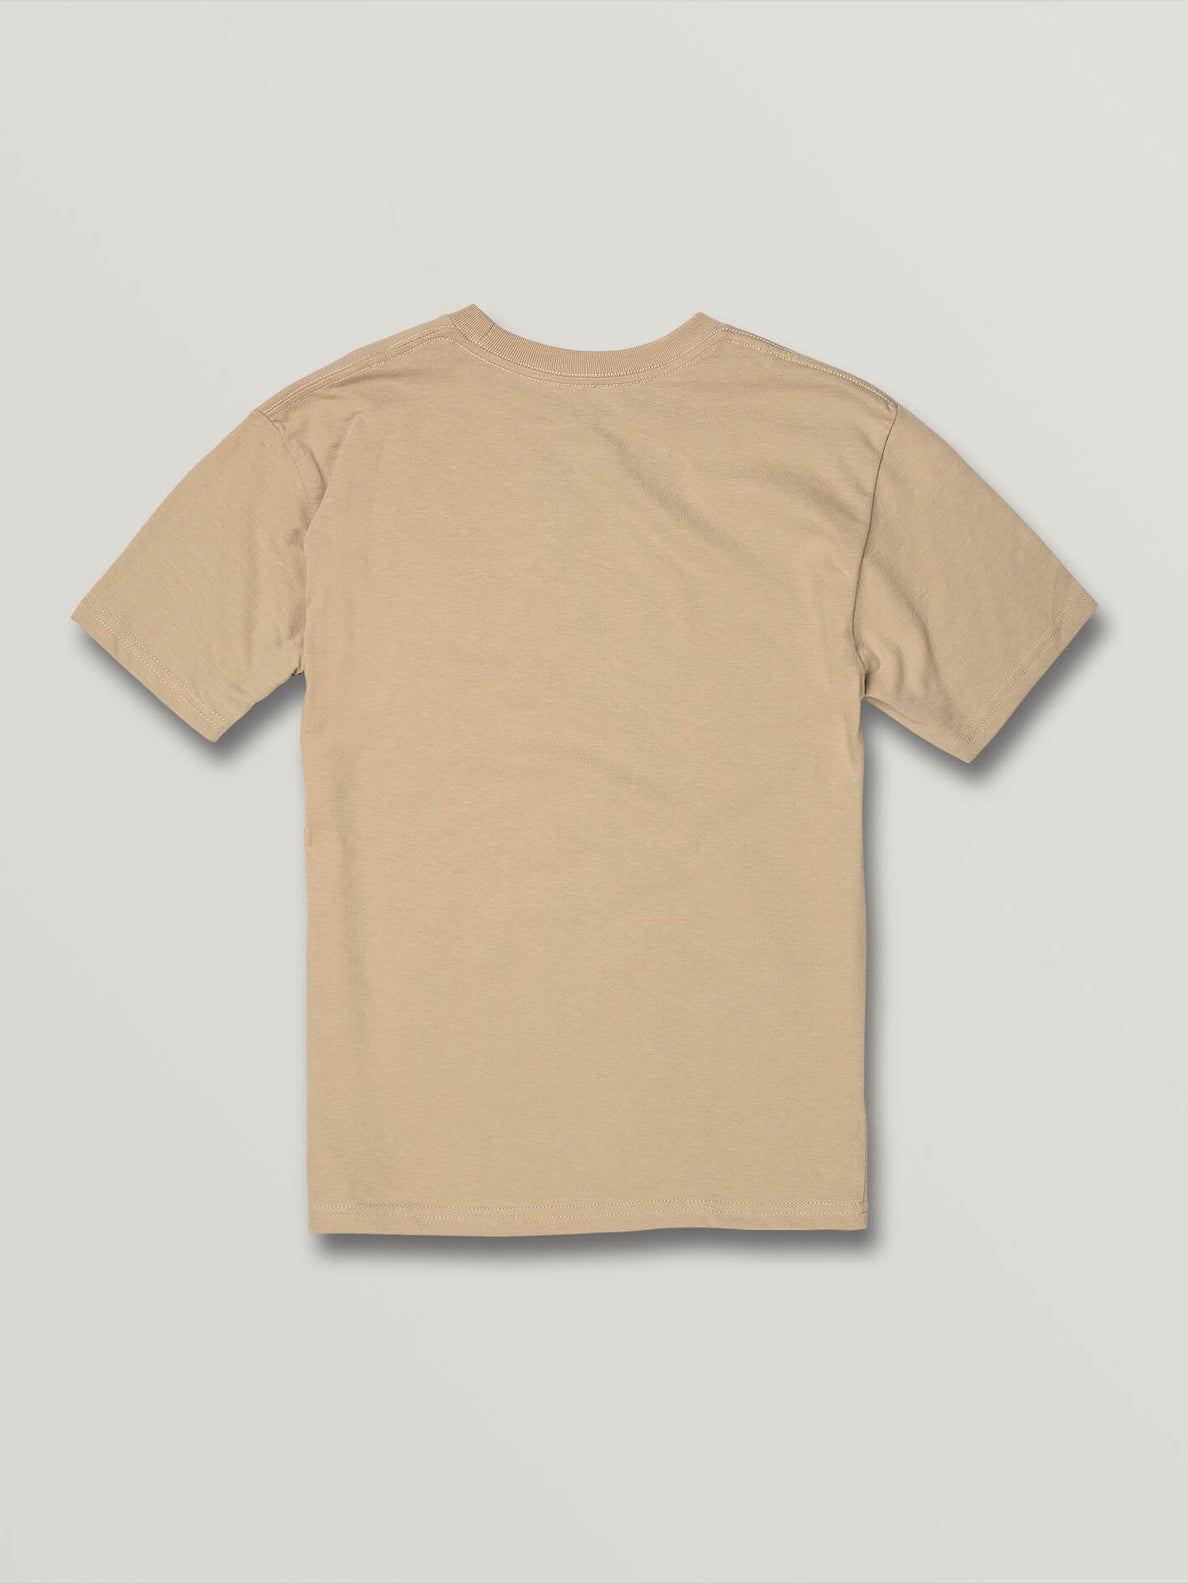 Big Boys Crisp Stone Short Sleeve Tee - Sand